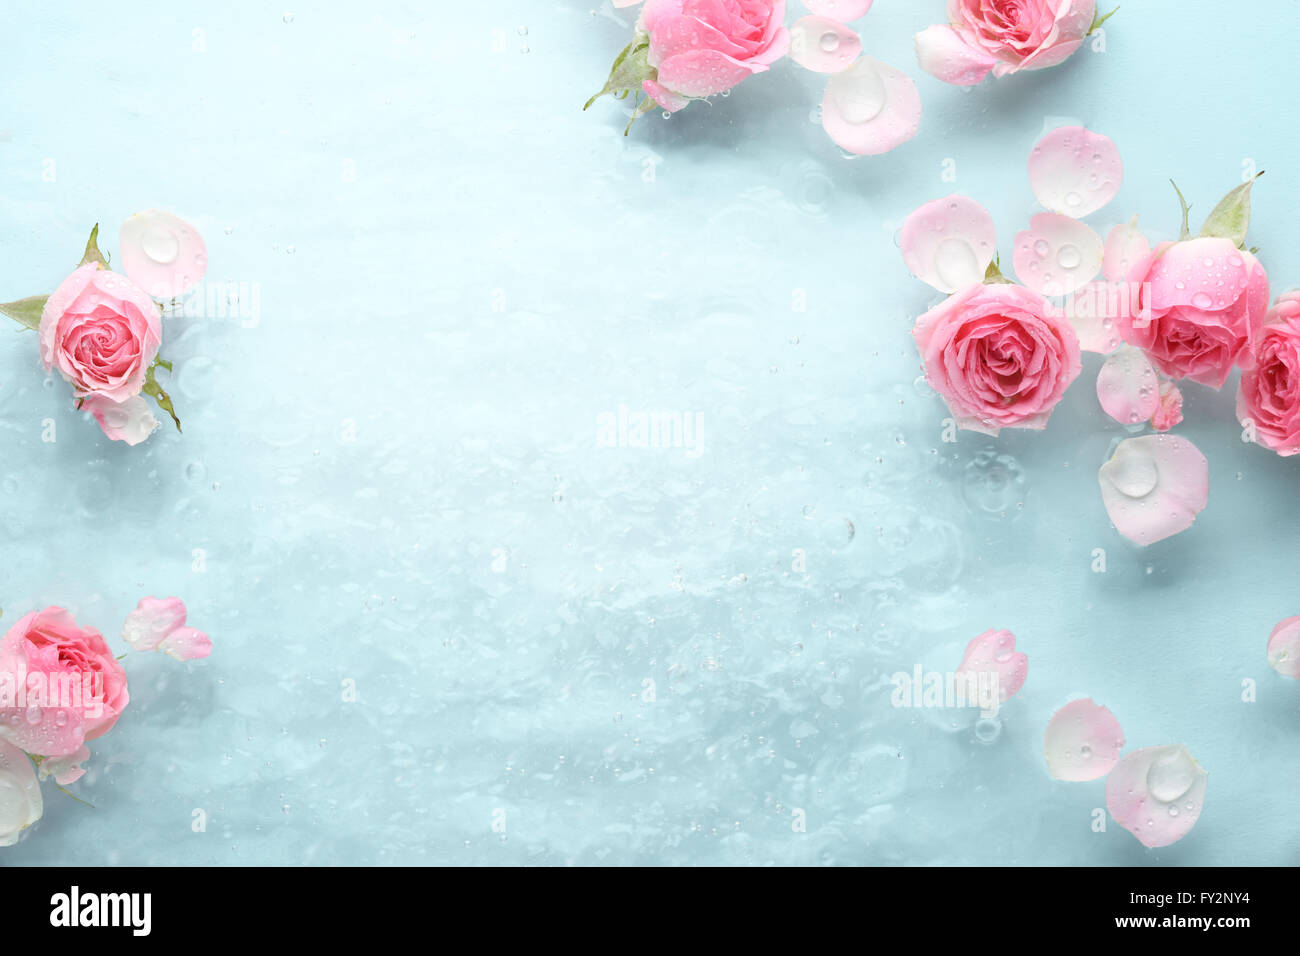 rose in water spa background stock photo 102708680 alamy